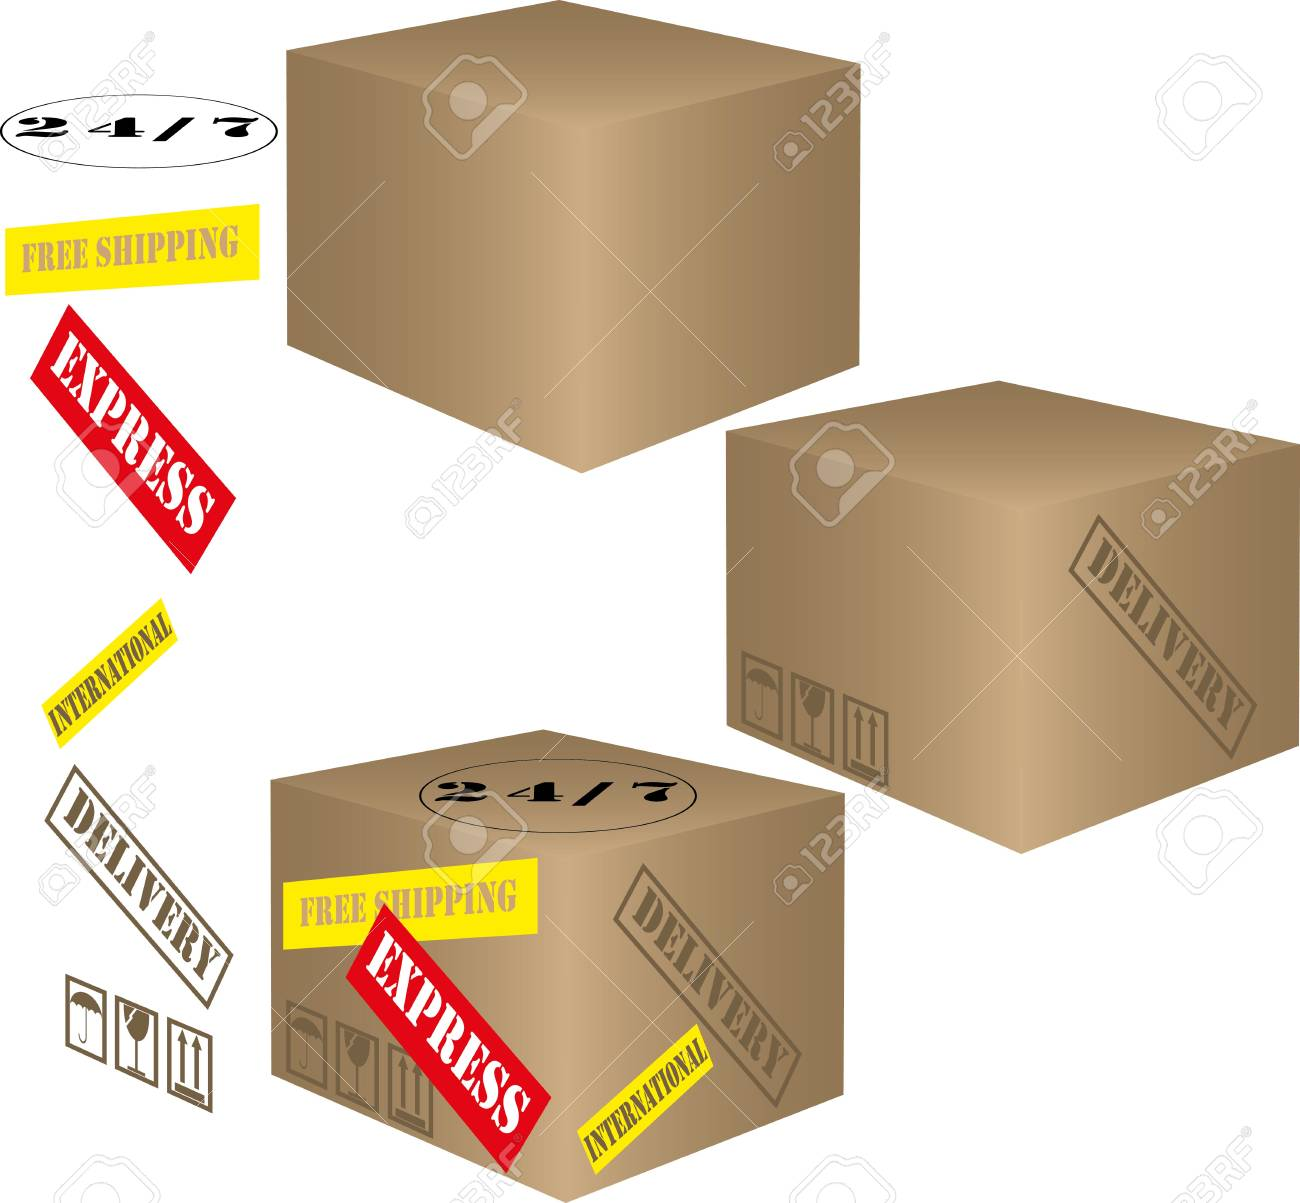 Cardboard boxes with shipping labels